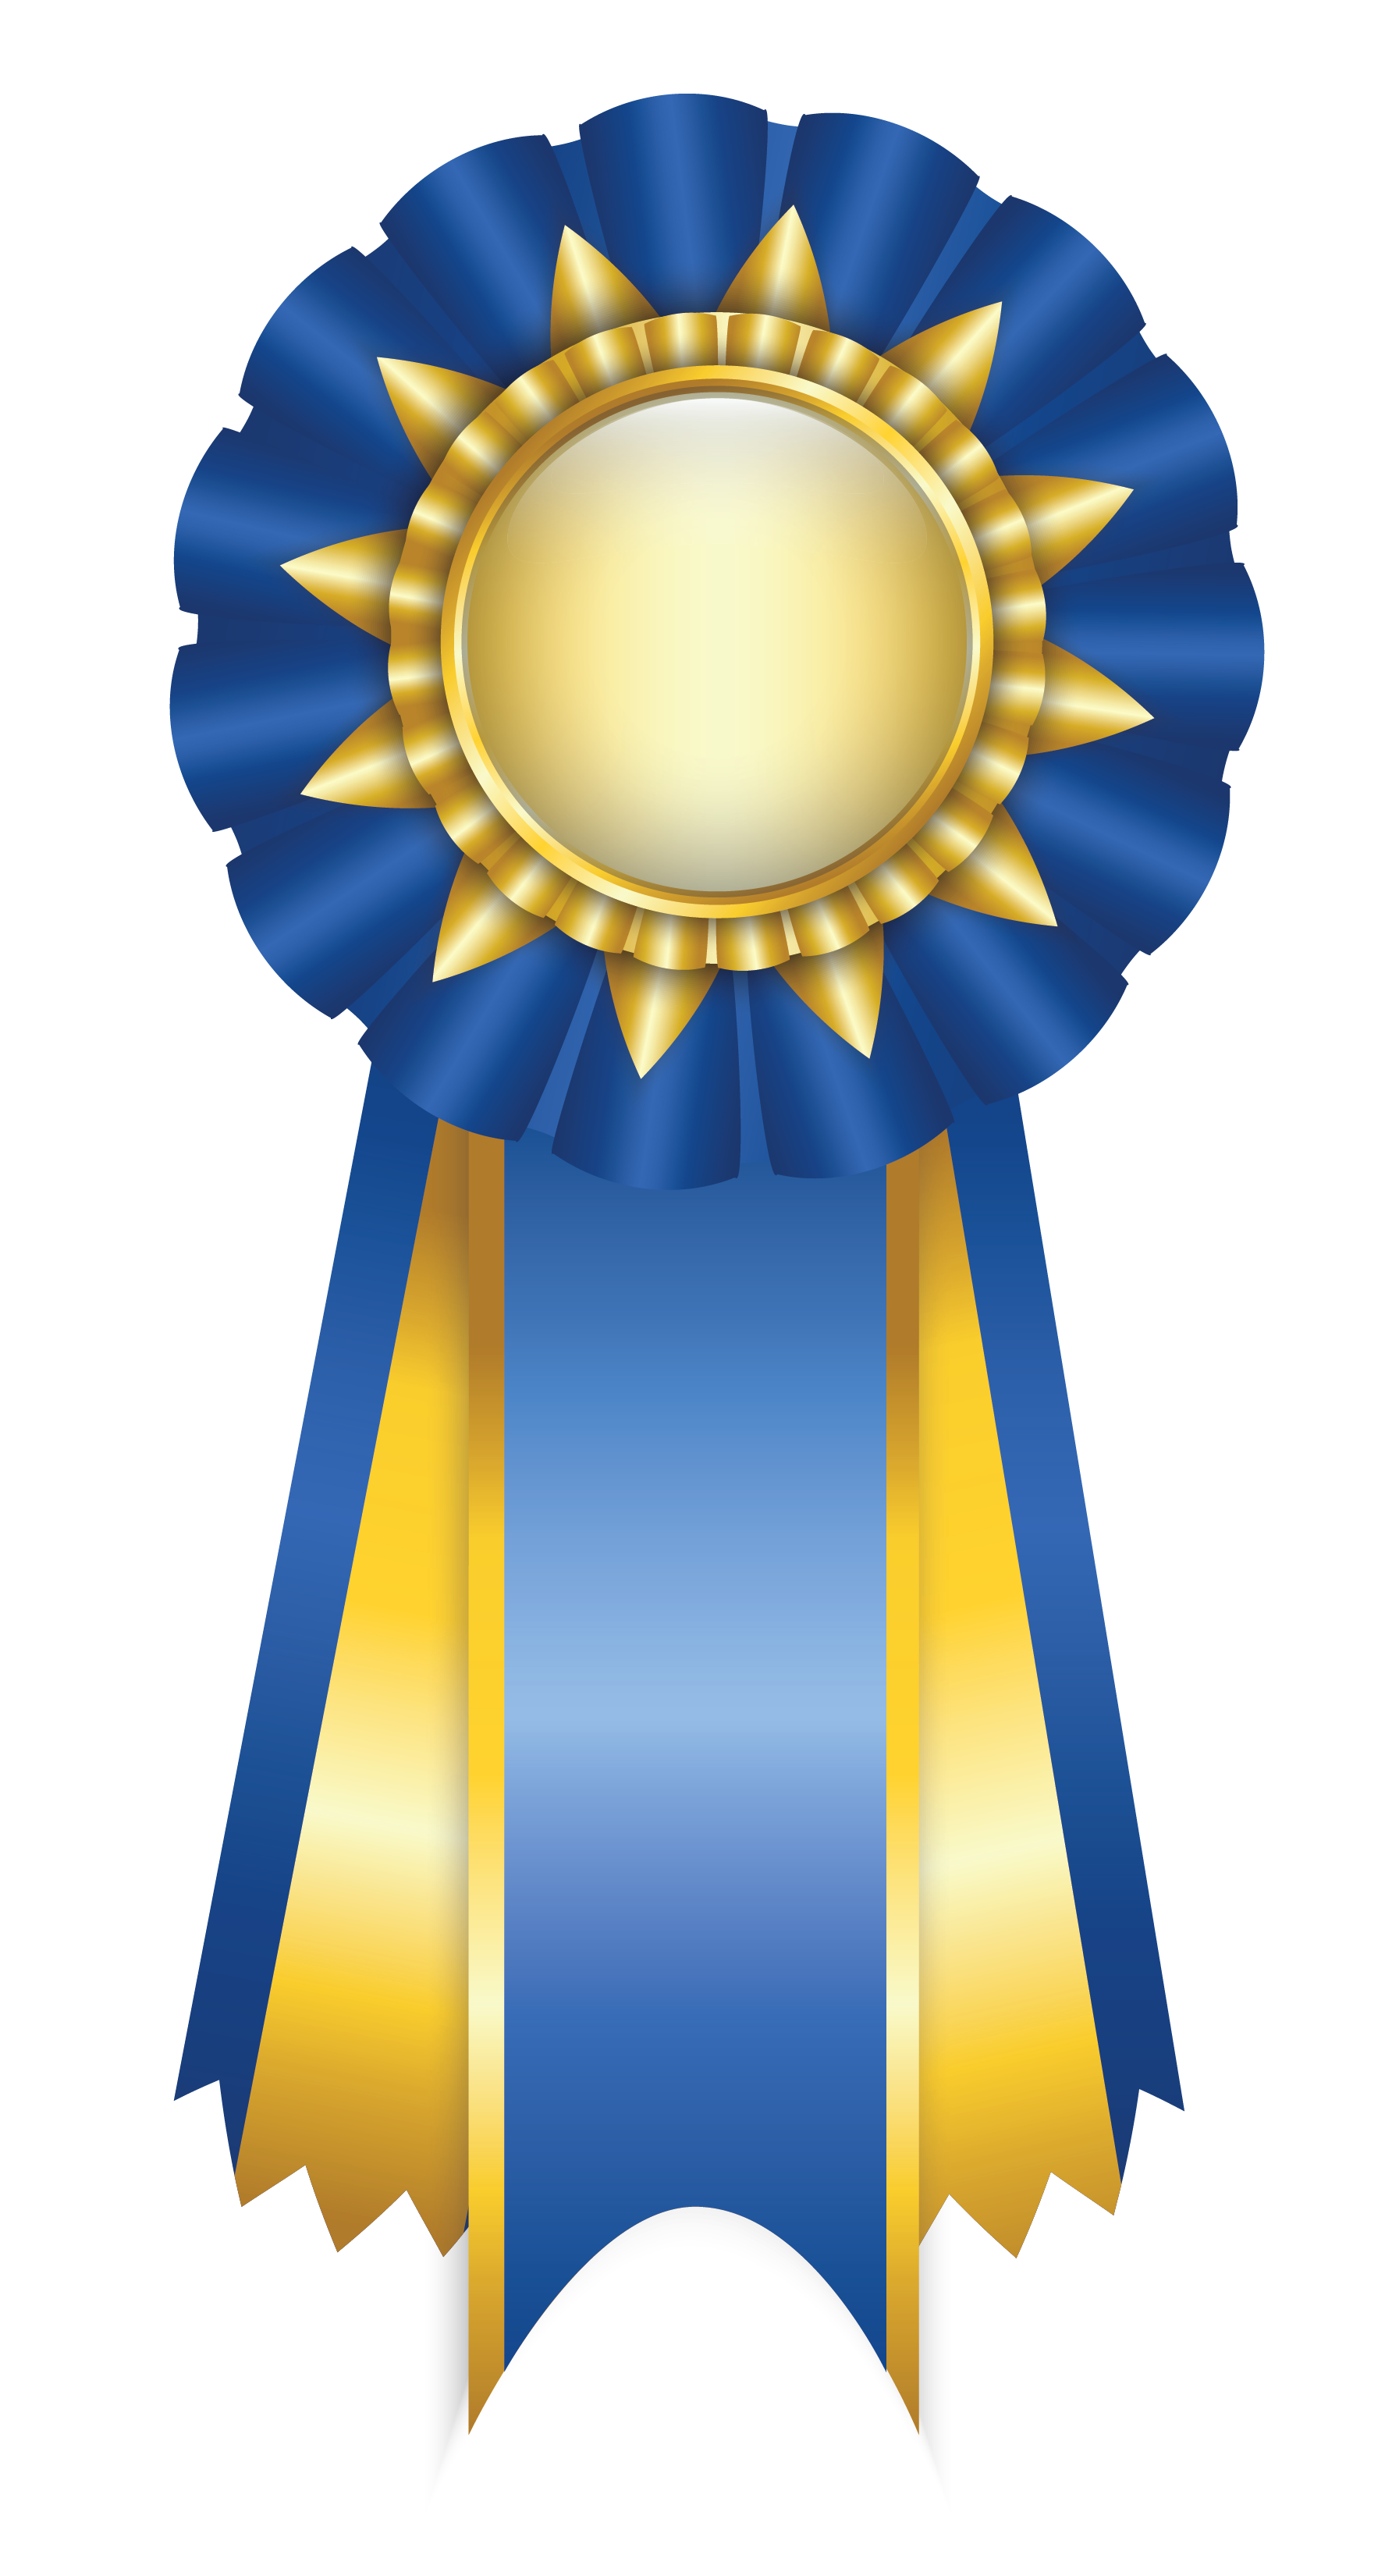 Free clipart images of blue ribbon award clip black and white Pin by Gracia Celadis-Casano on Ribbon png | Ribbon png, Ribbon ... clip black and white